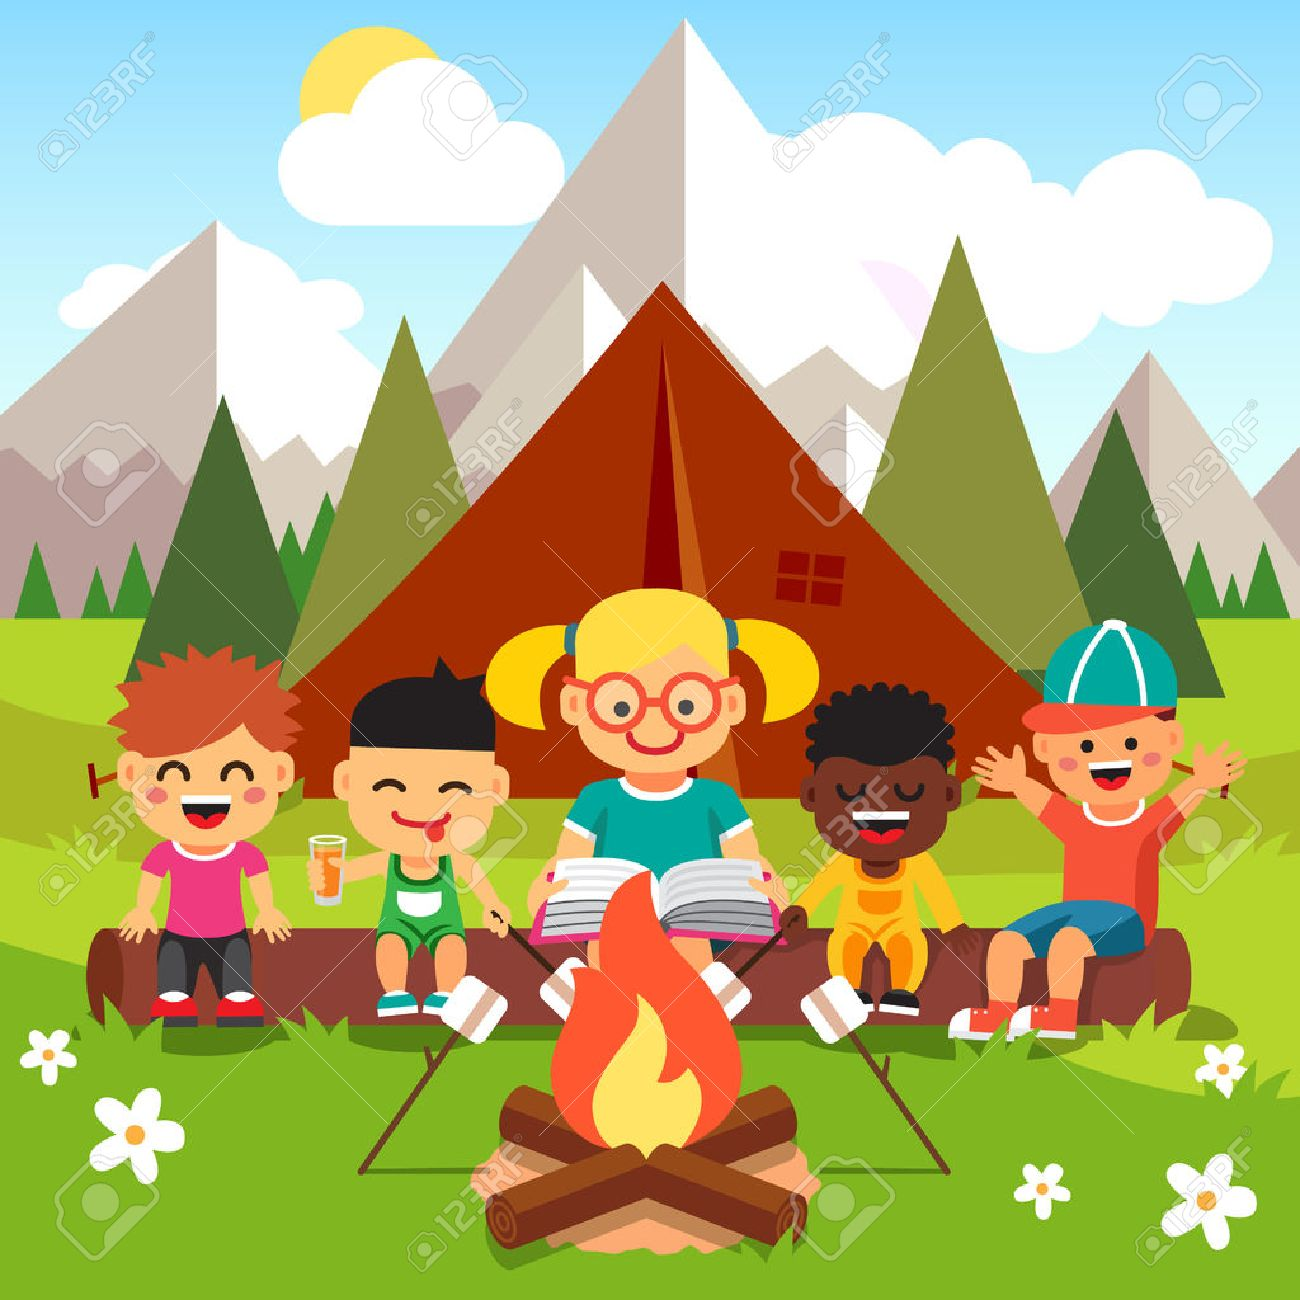 Kindergarten Kids Camping In The Forest Near Big Mountains Children Sitting And Listening To A